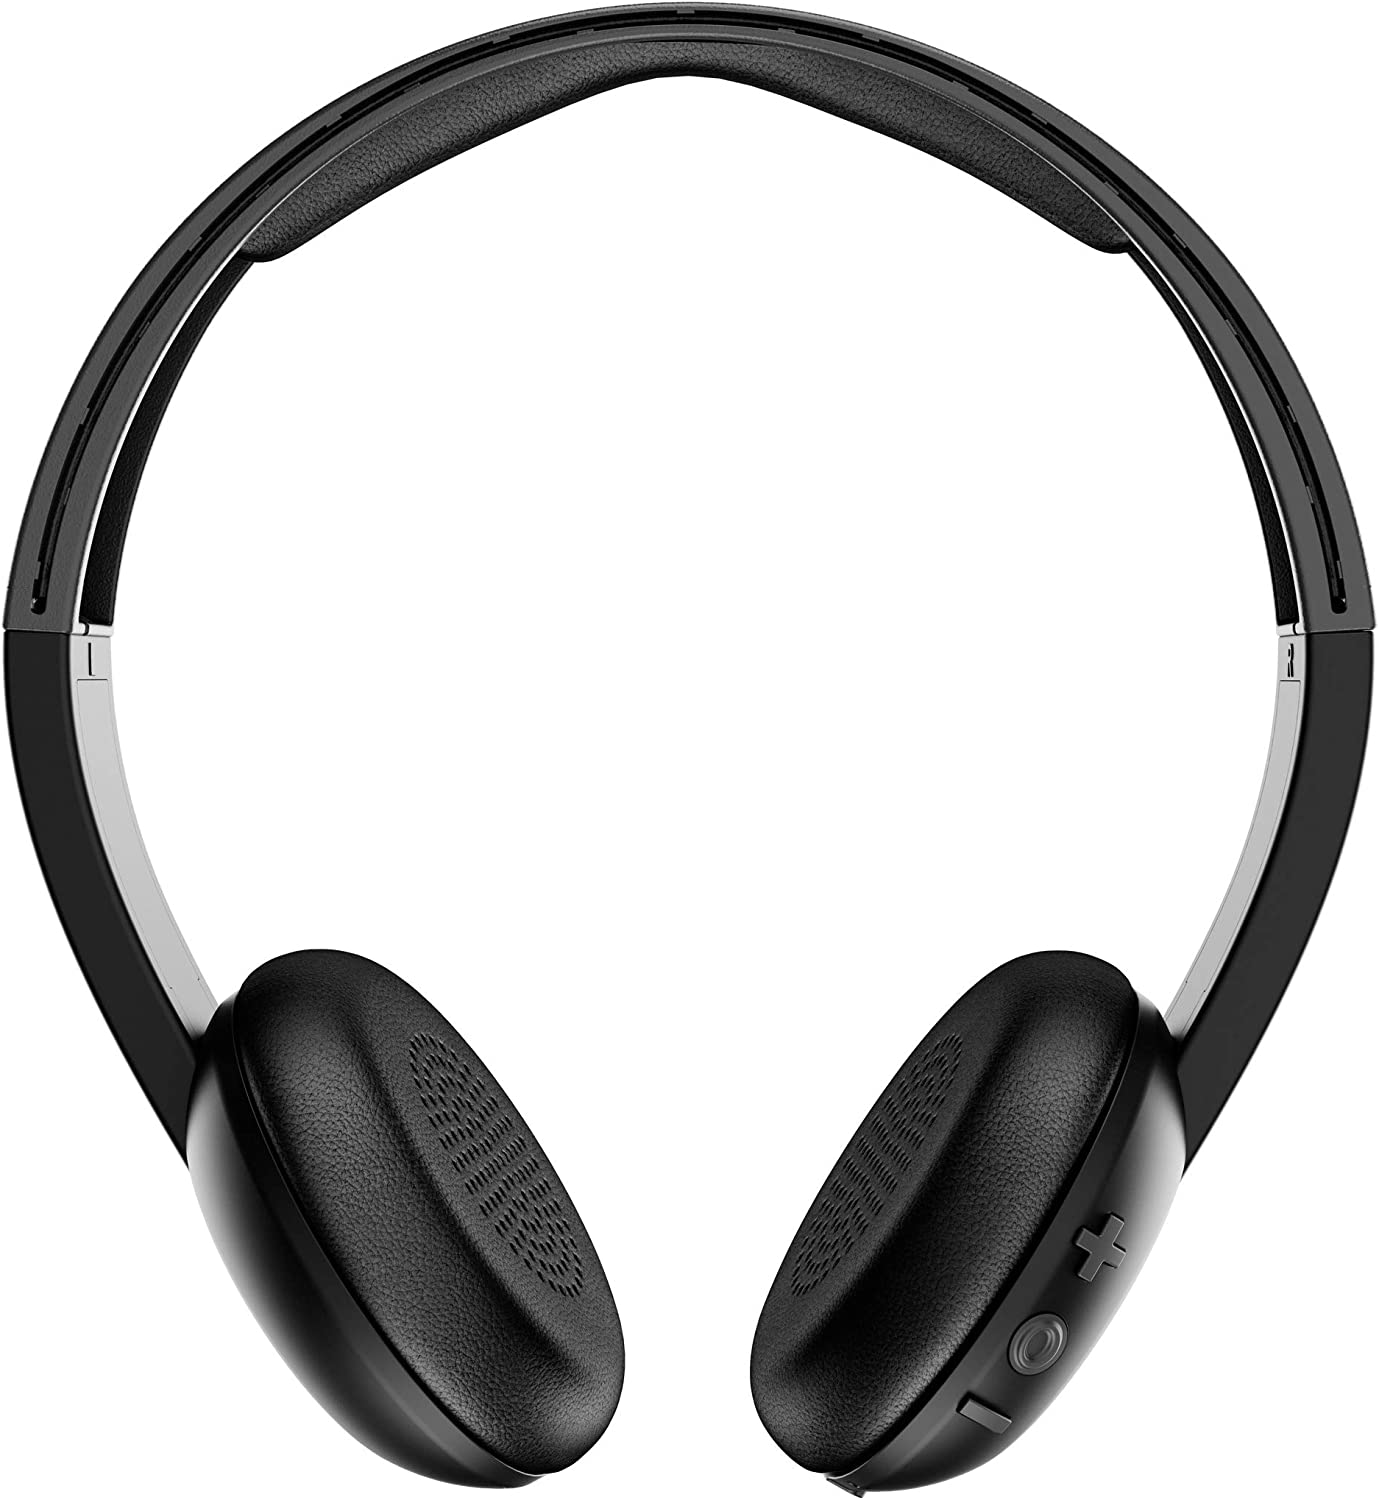 Amazon Com Skullcandy Uproar Bluetooth Wireless On Ear Headphones With Built In Mic And Remote Black Home Audio Theater